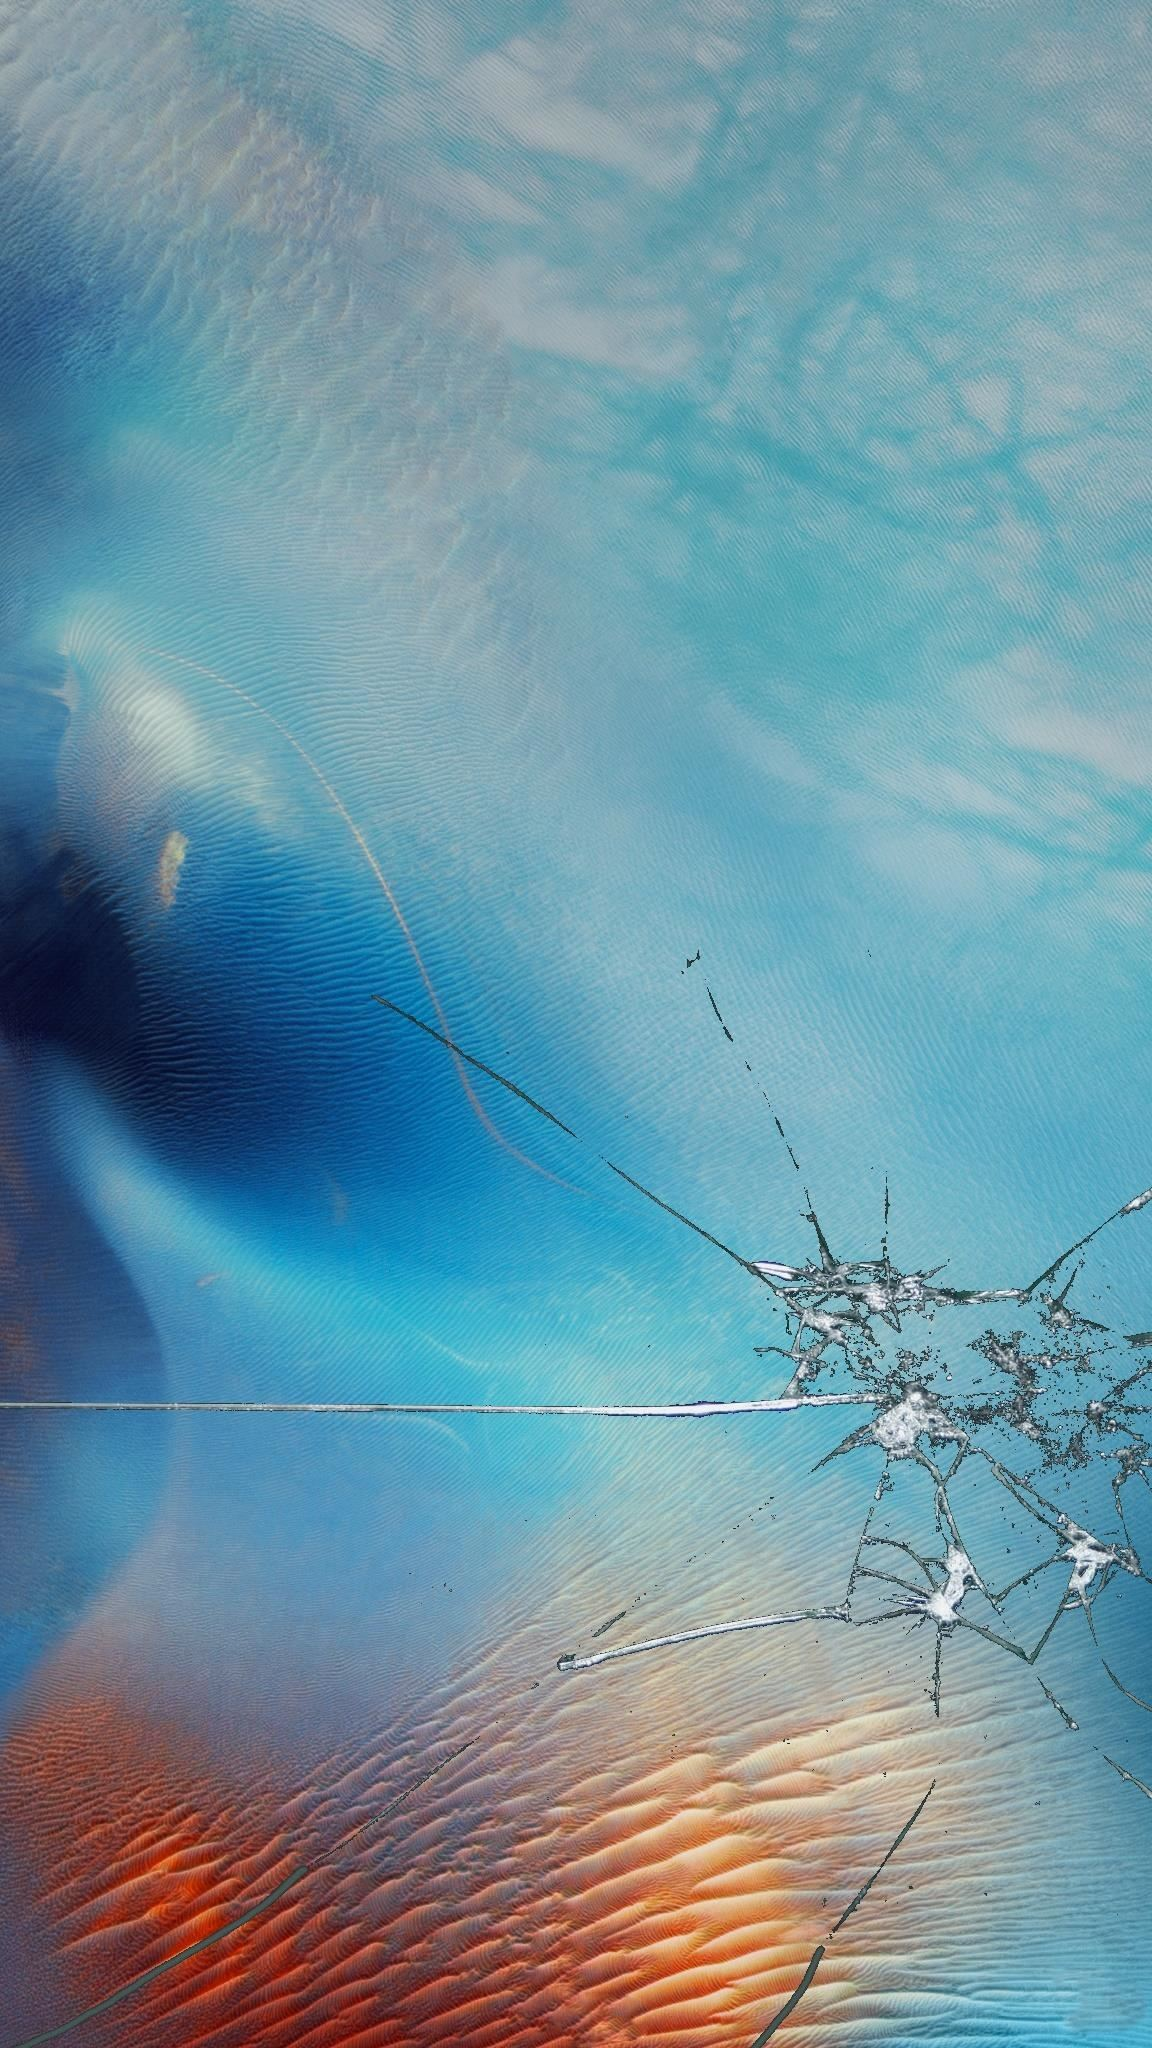 Iphone Cracked Screen Wallpapers Top Free Iphone Cracked Screen Backgrounds Wallpaperaccess